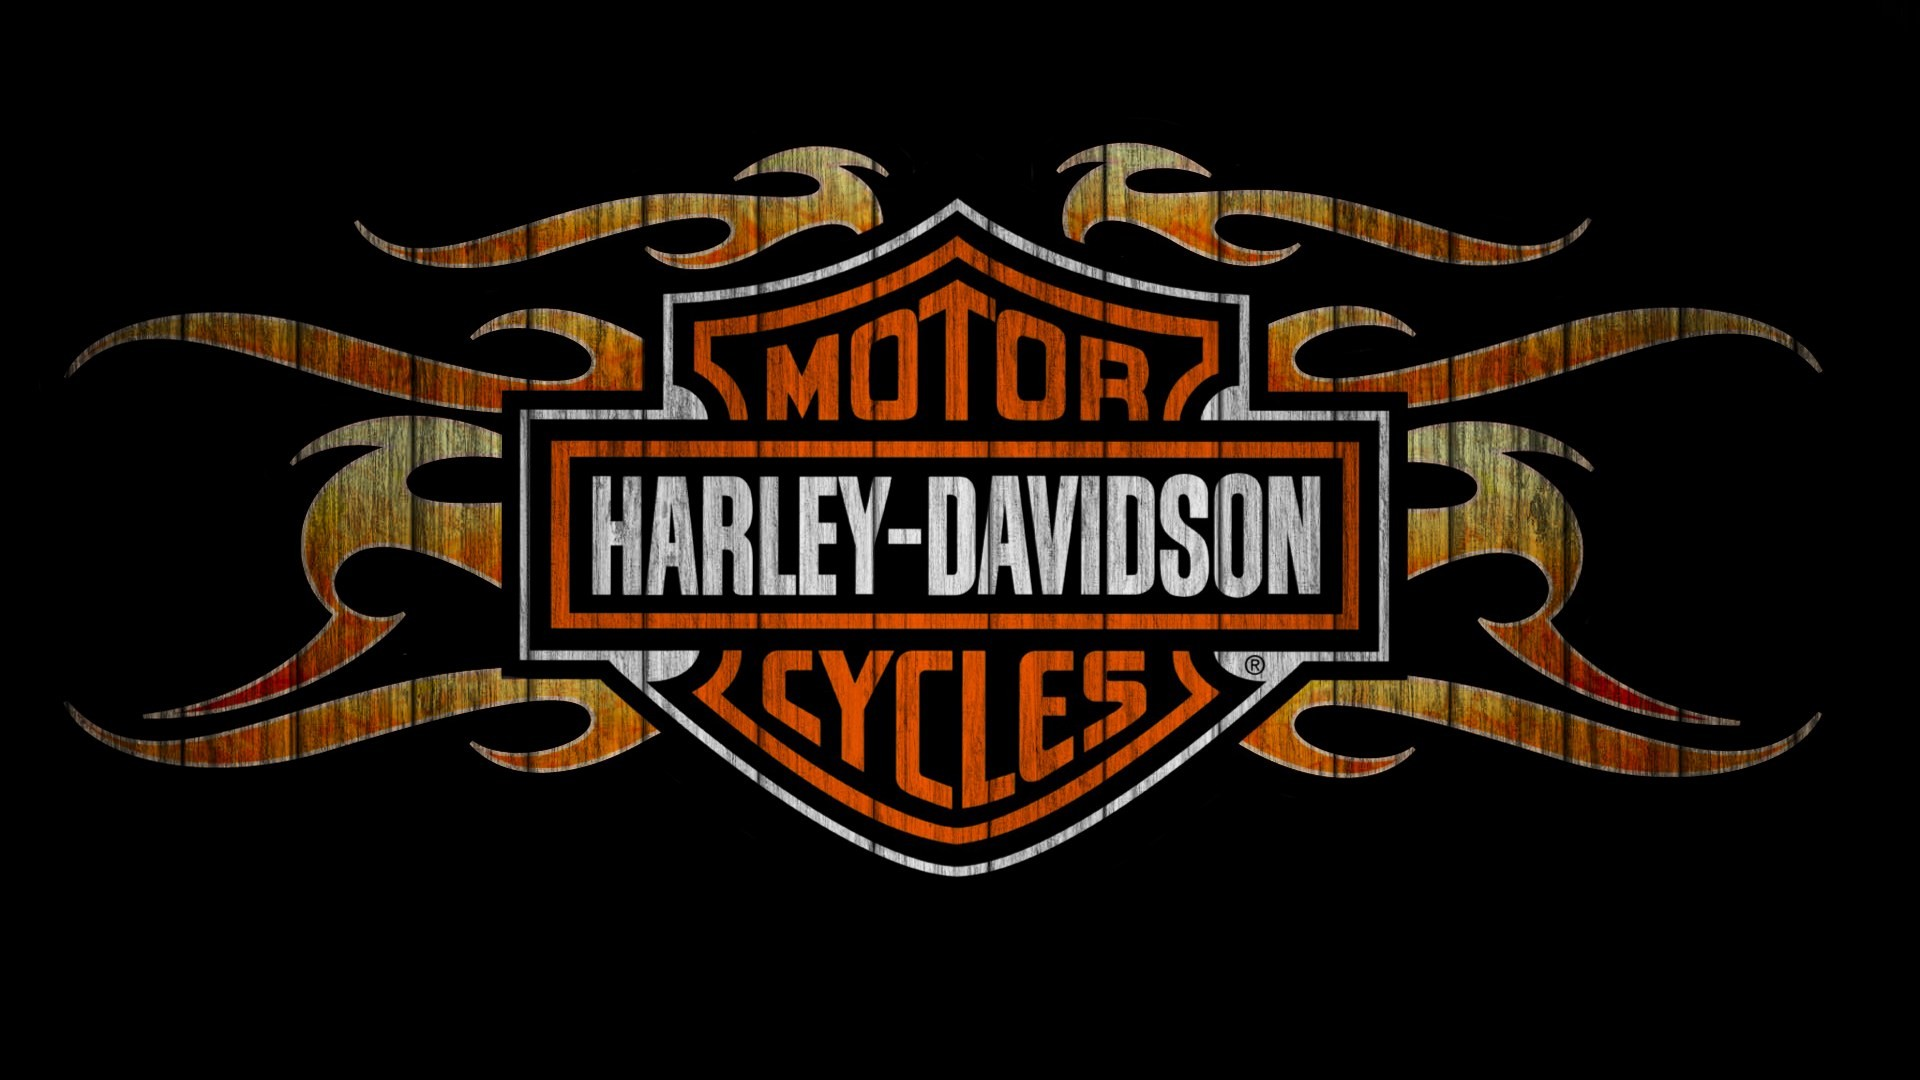 Hd harley davidson wallpapers 77 images 1920x1080 hd motorcycle wallpapers harley davidson motorcycle hd wallpapers voltagebd Images